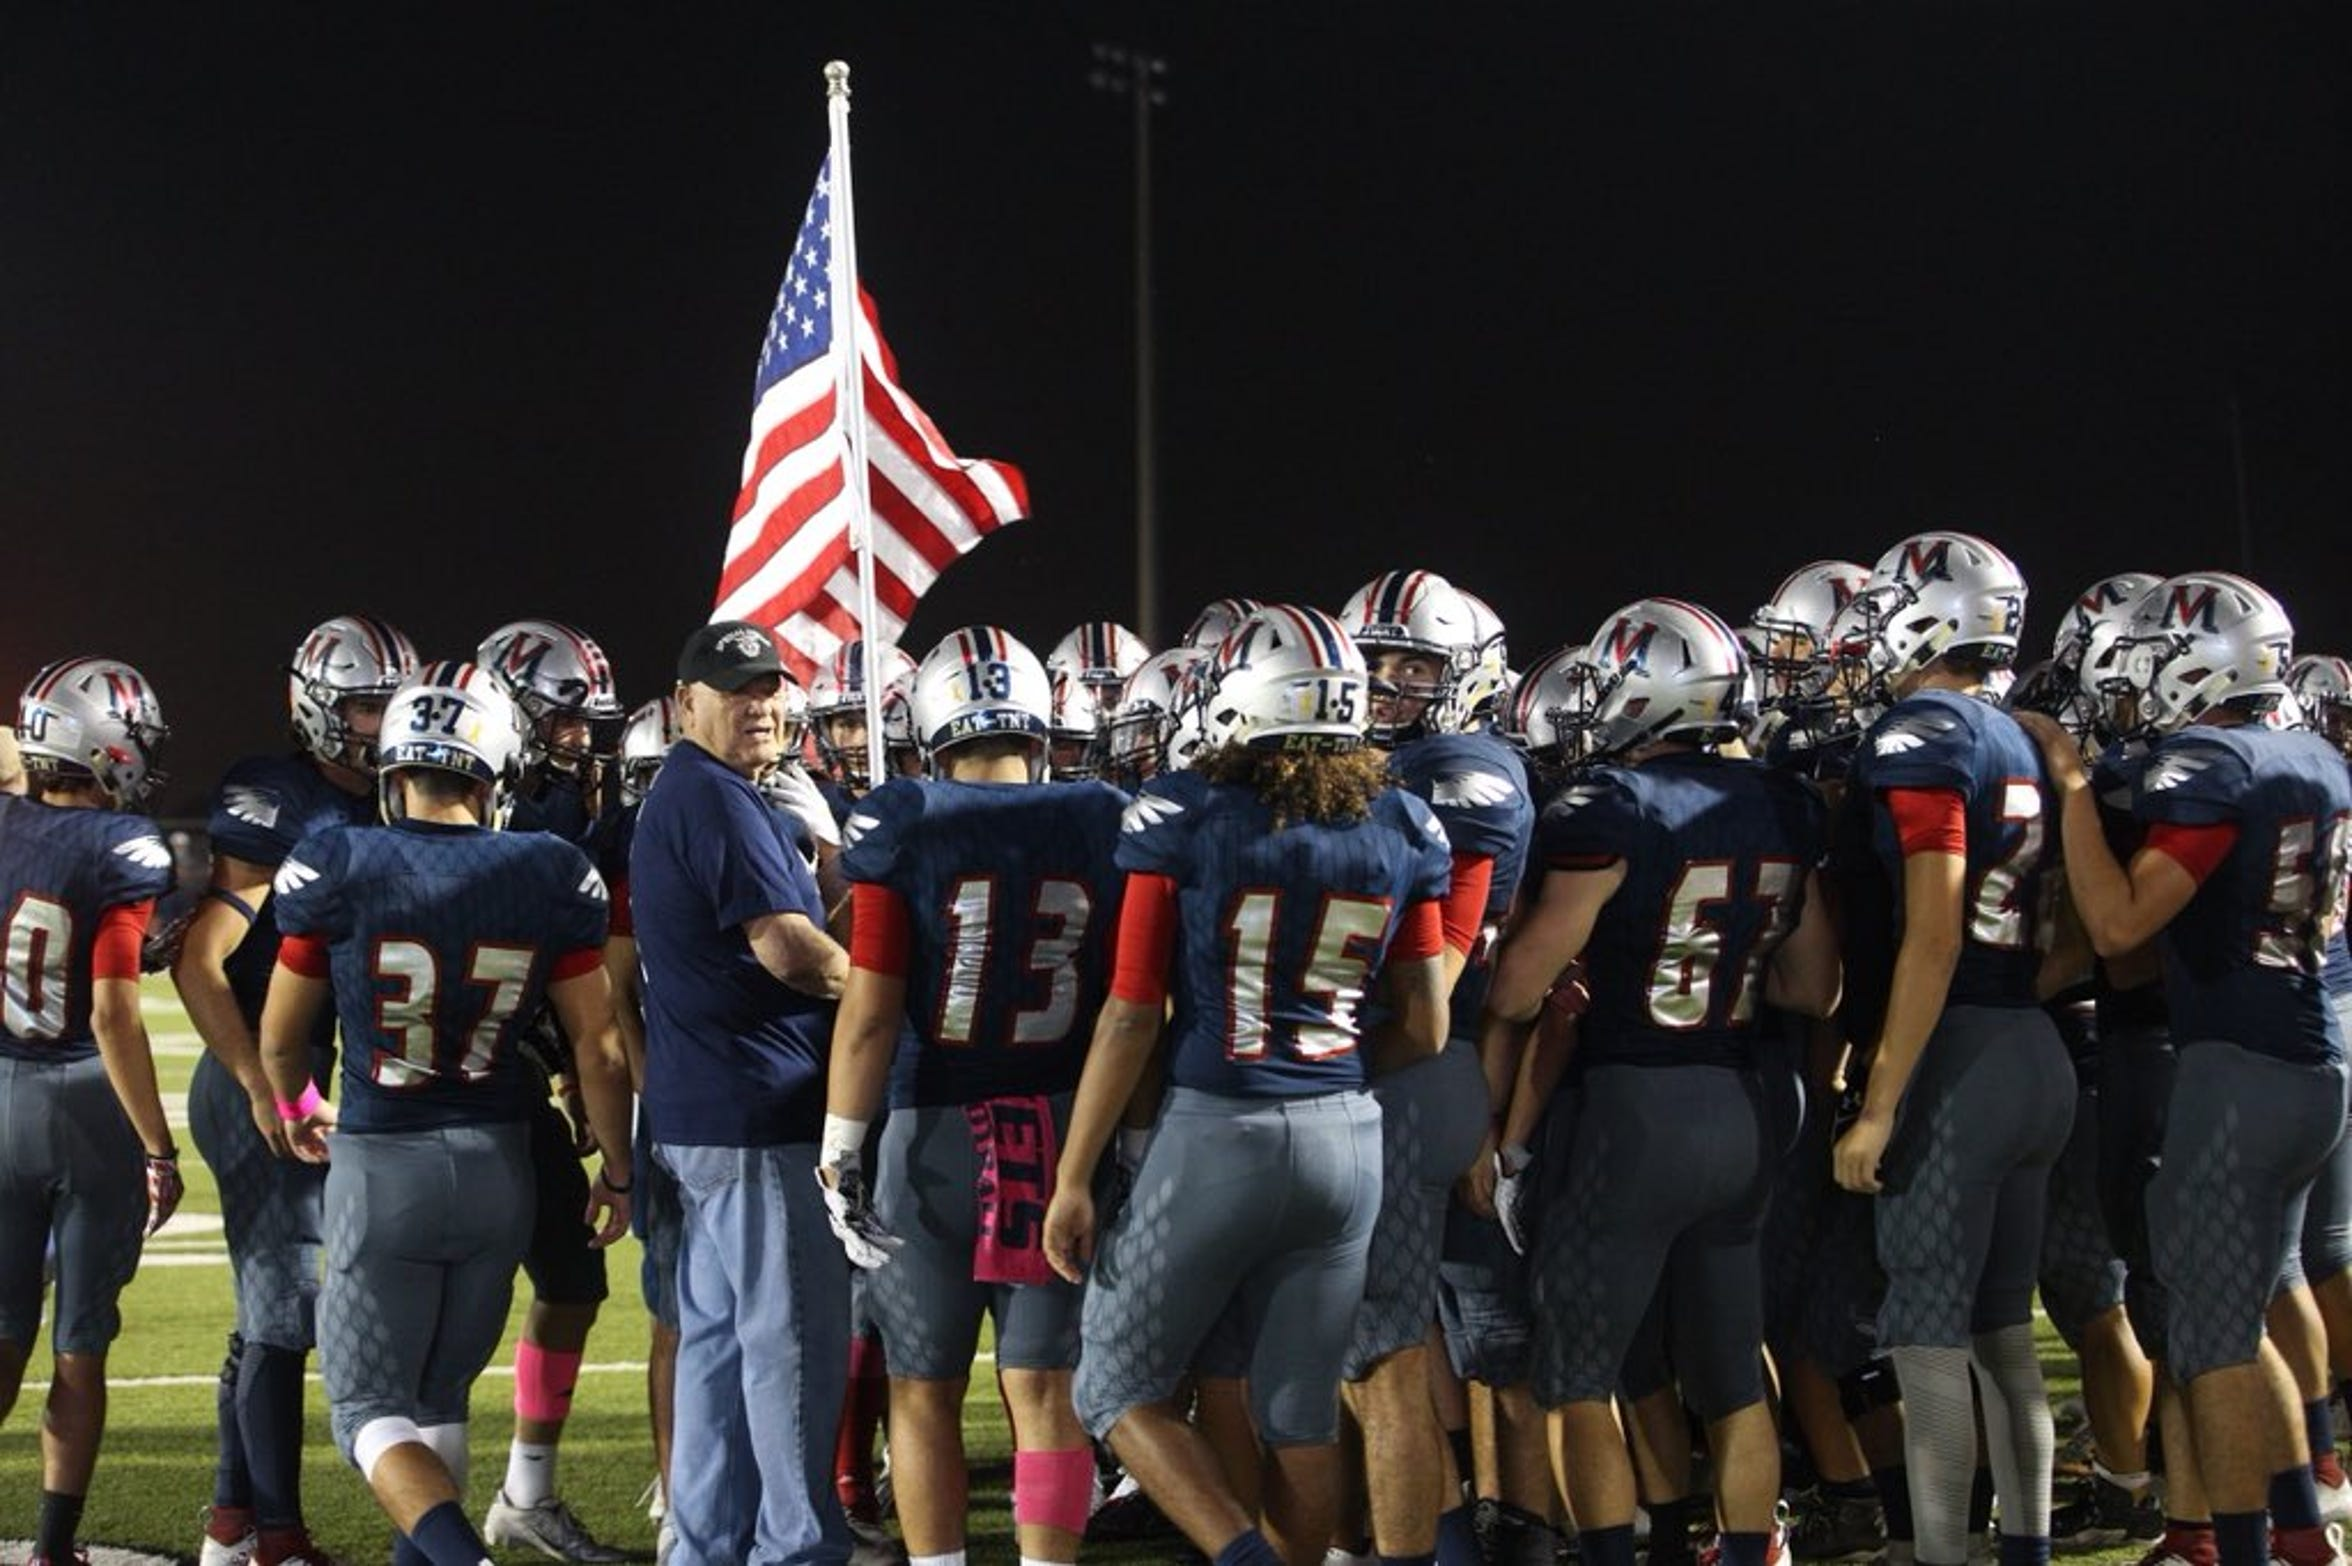 Veterans Memorial Eagles take field for game against Victoria East at Cabaniss Stadium.